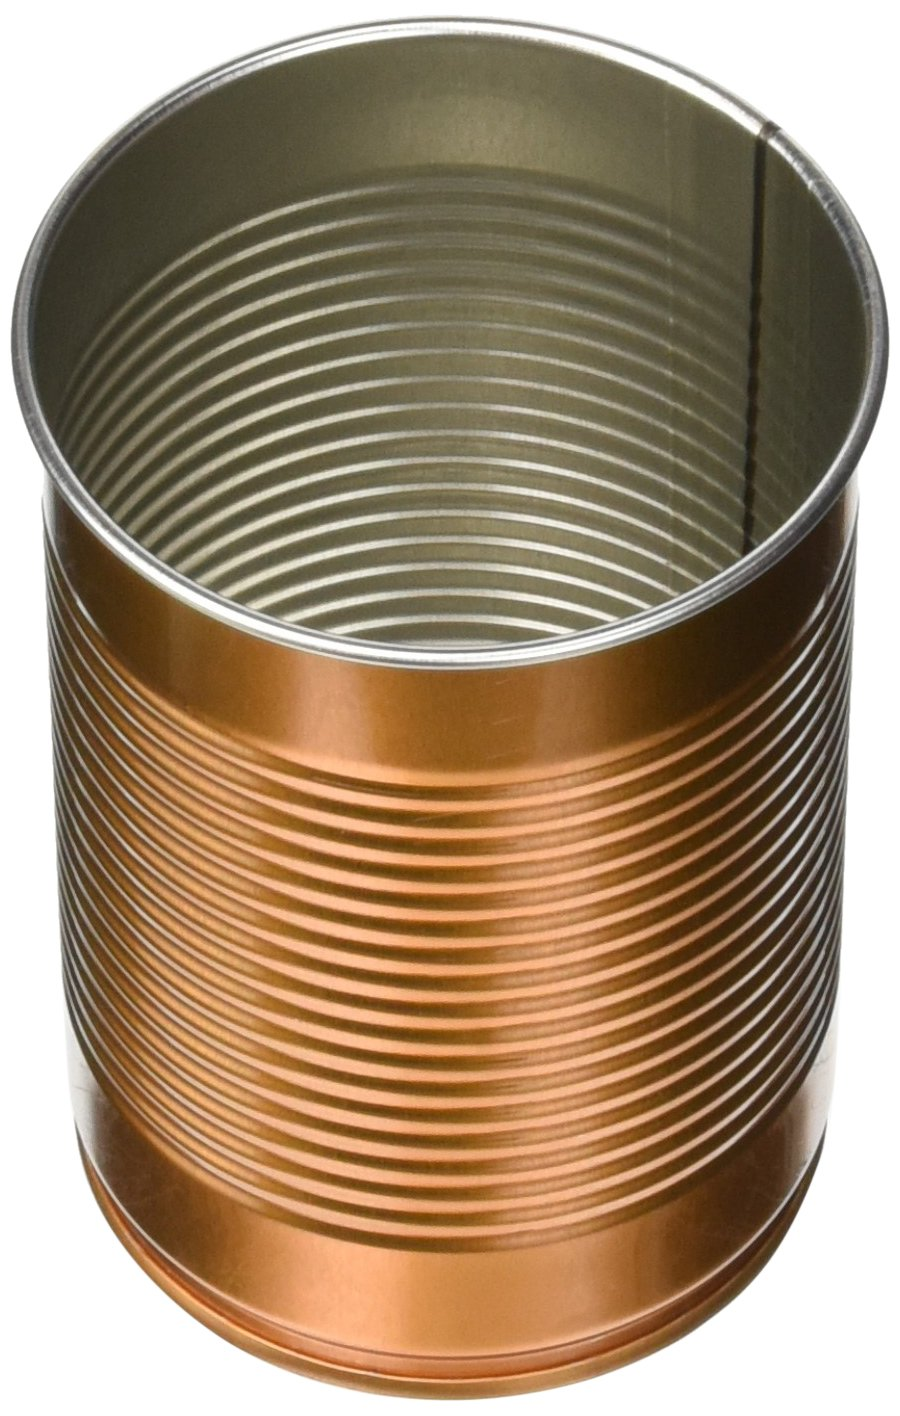 Tin Can Cocktail Cup Copper 10oz / 280ml - Set of 4 - Novelty Cocktail Mug in The Shape of a Bean Can bar@drinkstuff